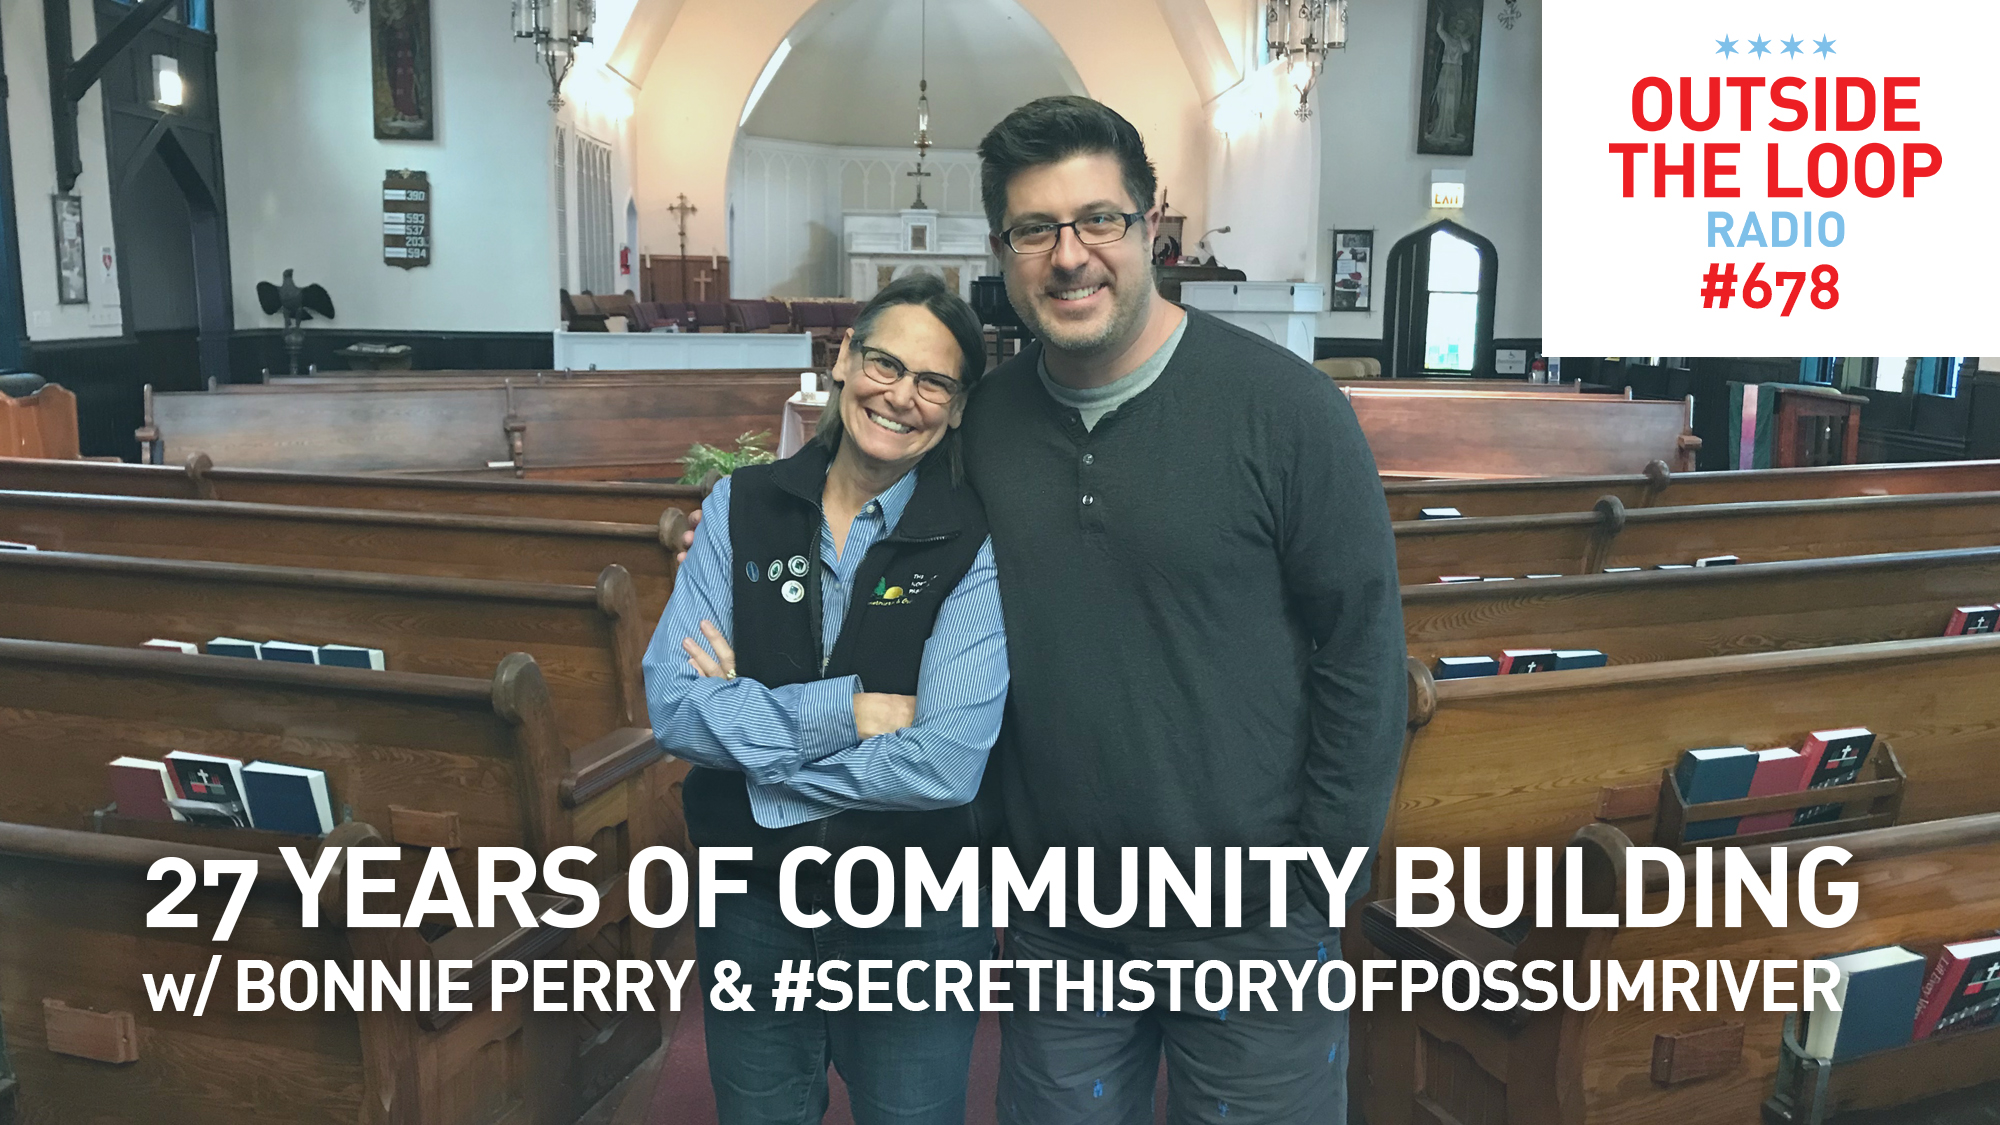 Rev. Bonnie Perry and Mike Stephen at All Saints Episcopal Church in Chicago's Ravenswood neighborhood.